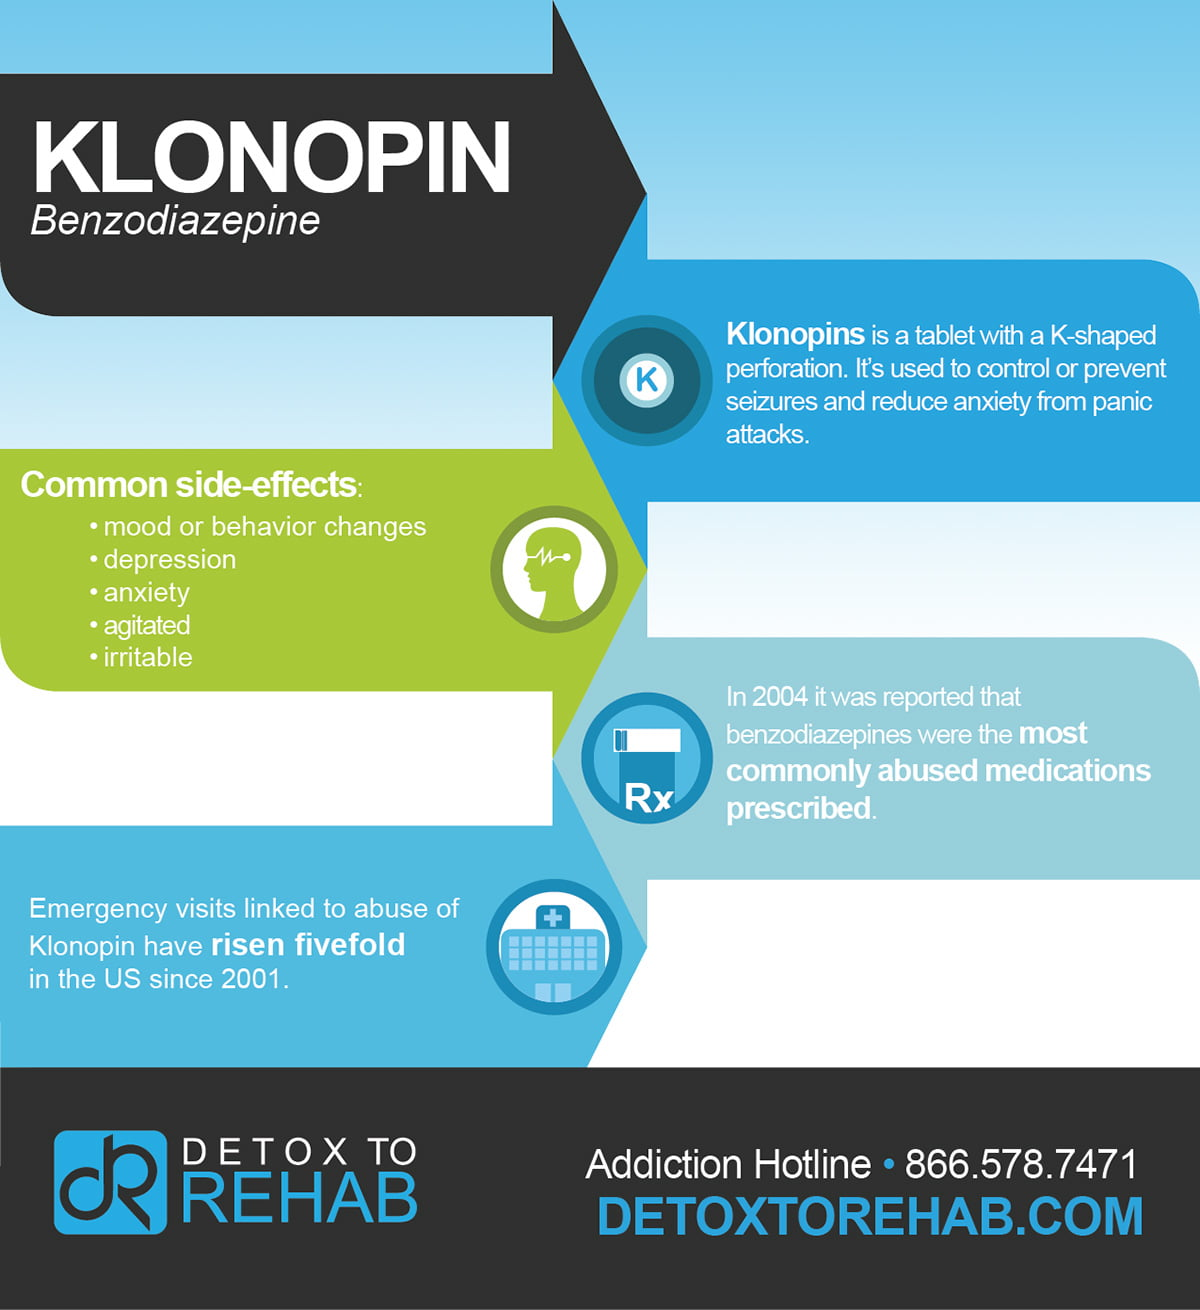 klonopin symptoms